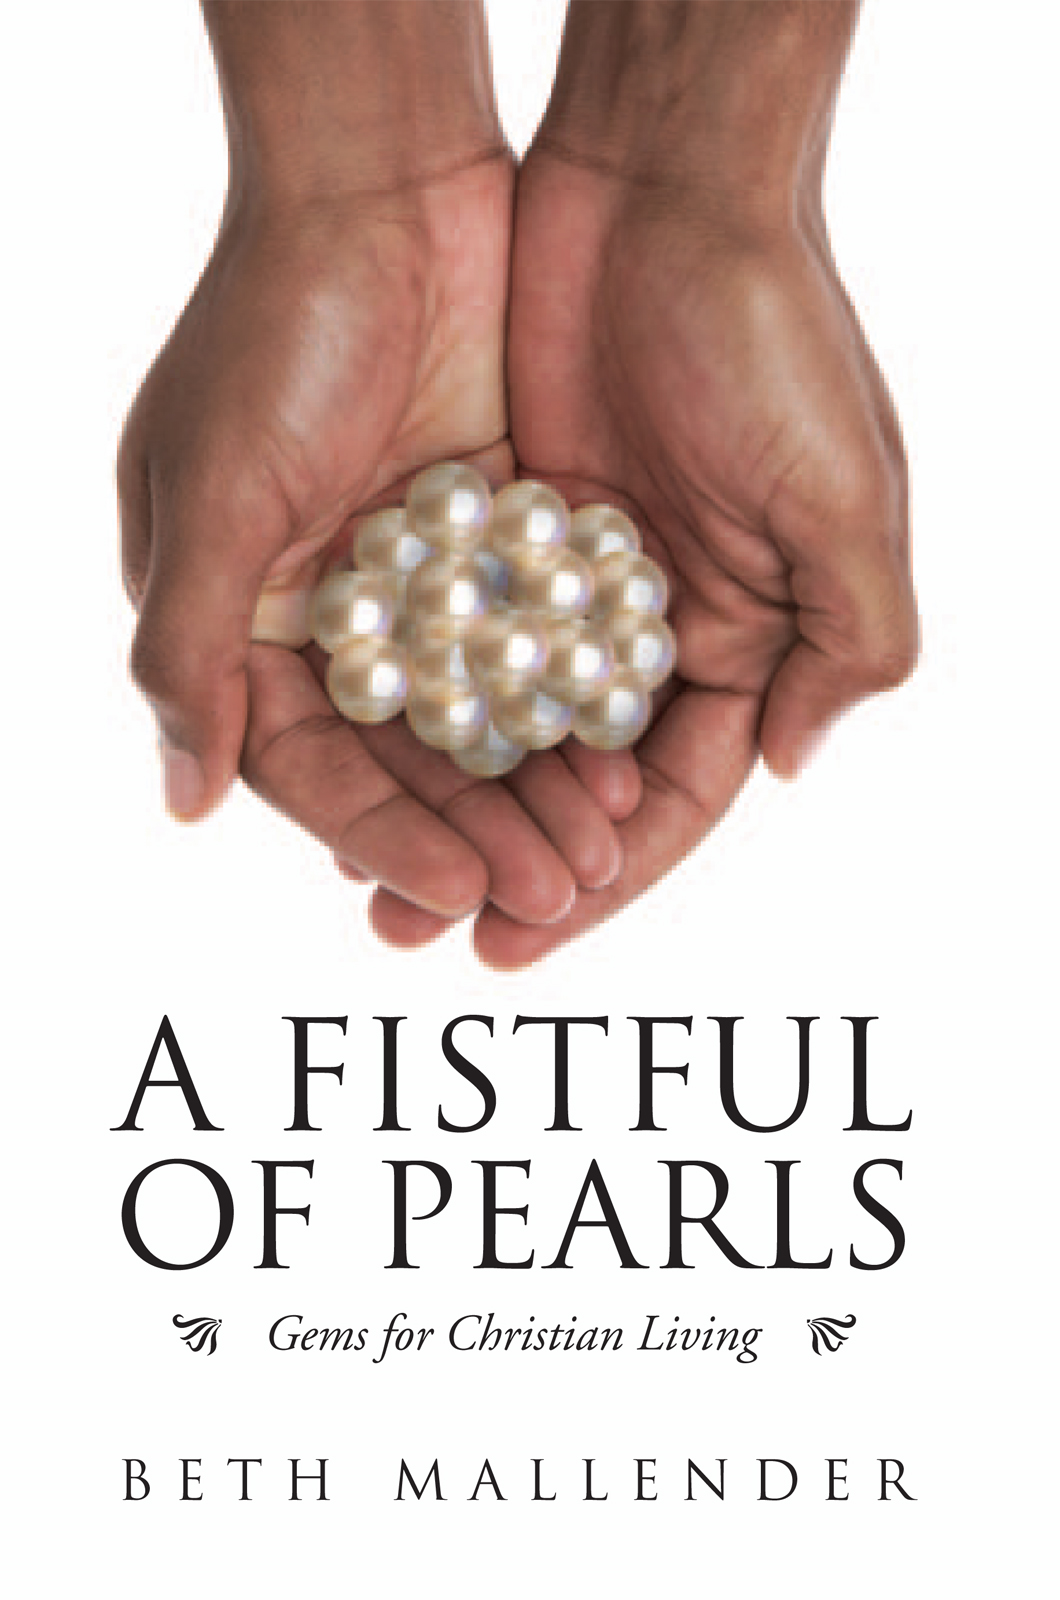 A Fistful of Pearls